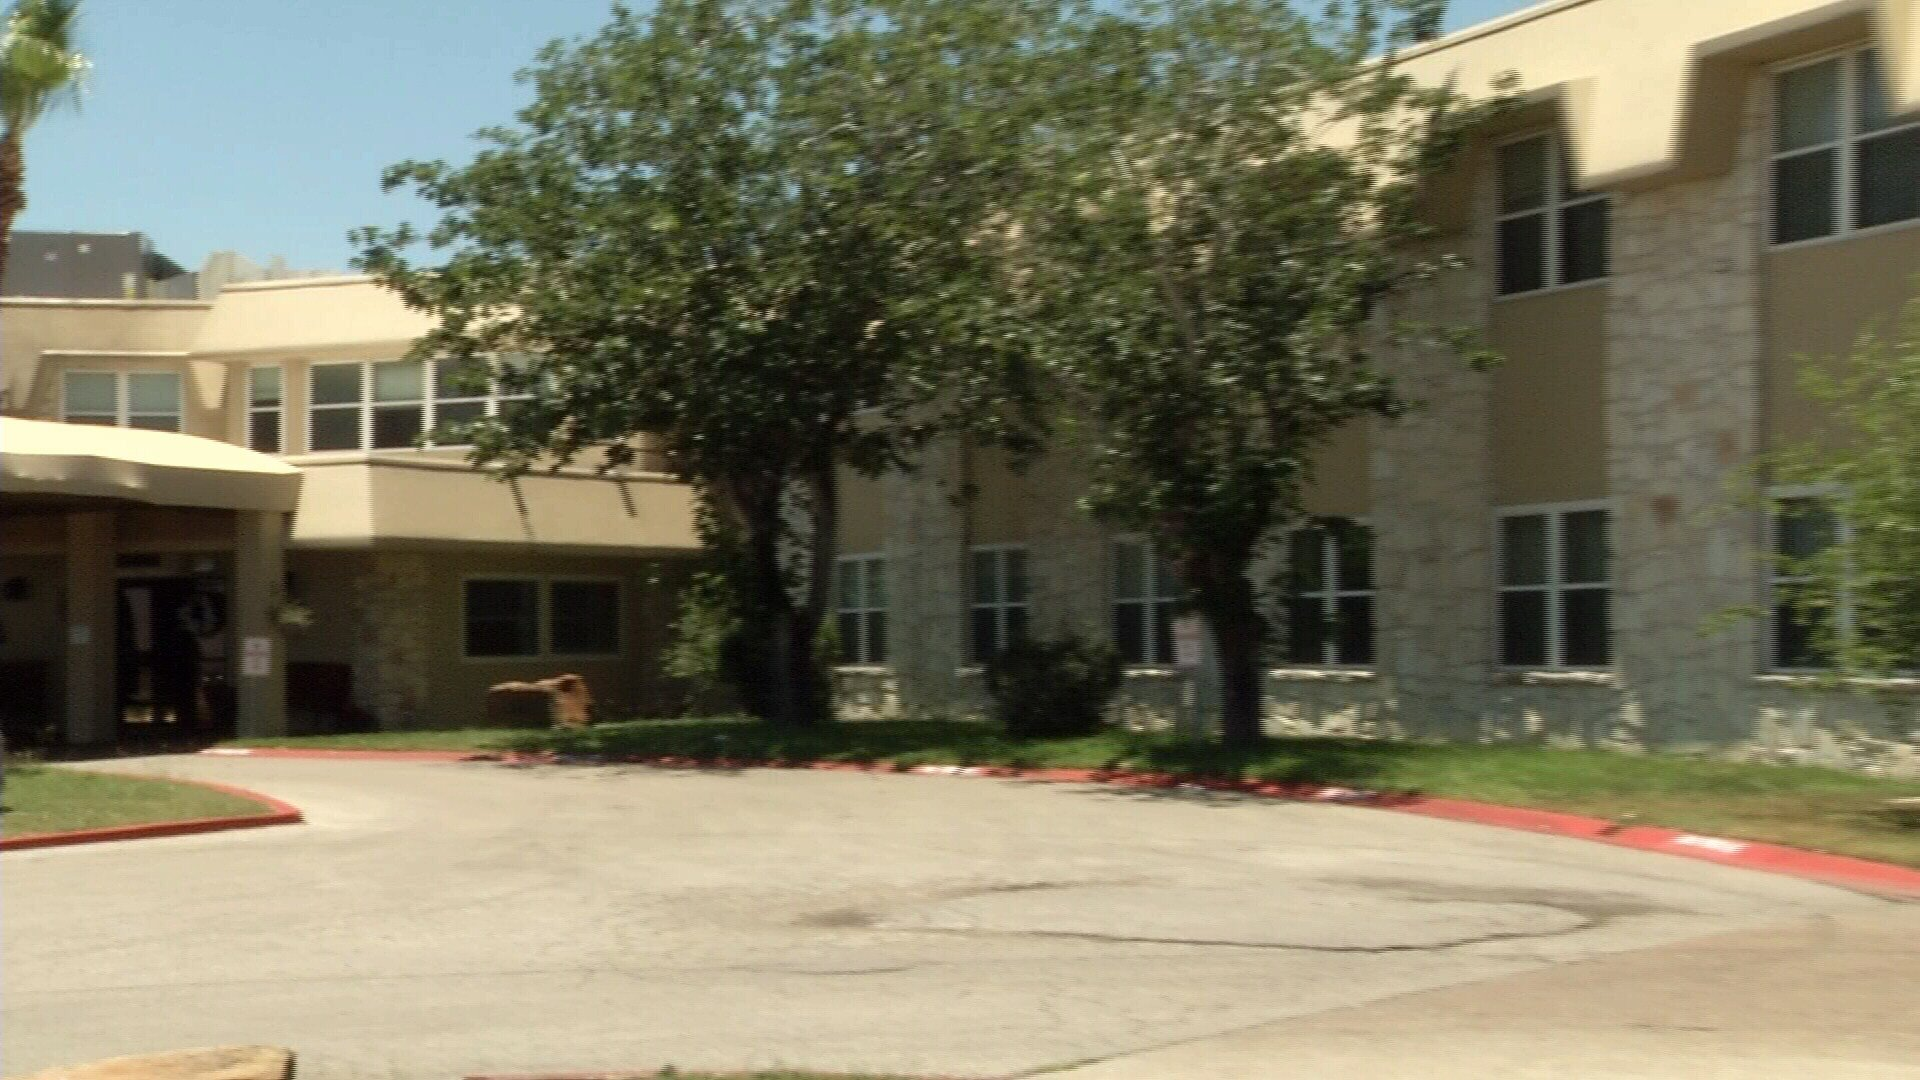 The VA has reopened its contract process to allow for more nursing home options in Corpus Christi. That comes after a KRIS 6 Investigation exposed the neglectful conditions at some local nursing homes under contract with the VA. (KRIS 6 News)